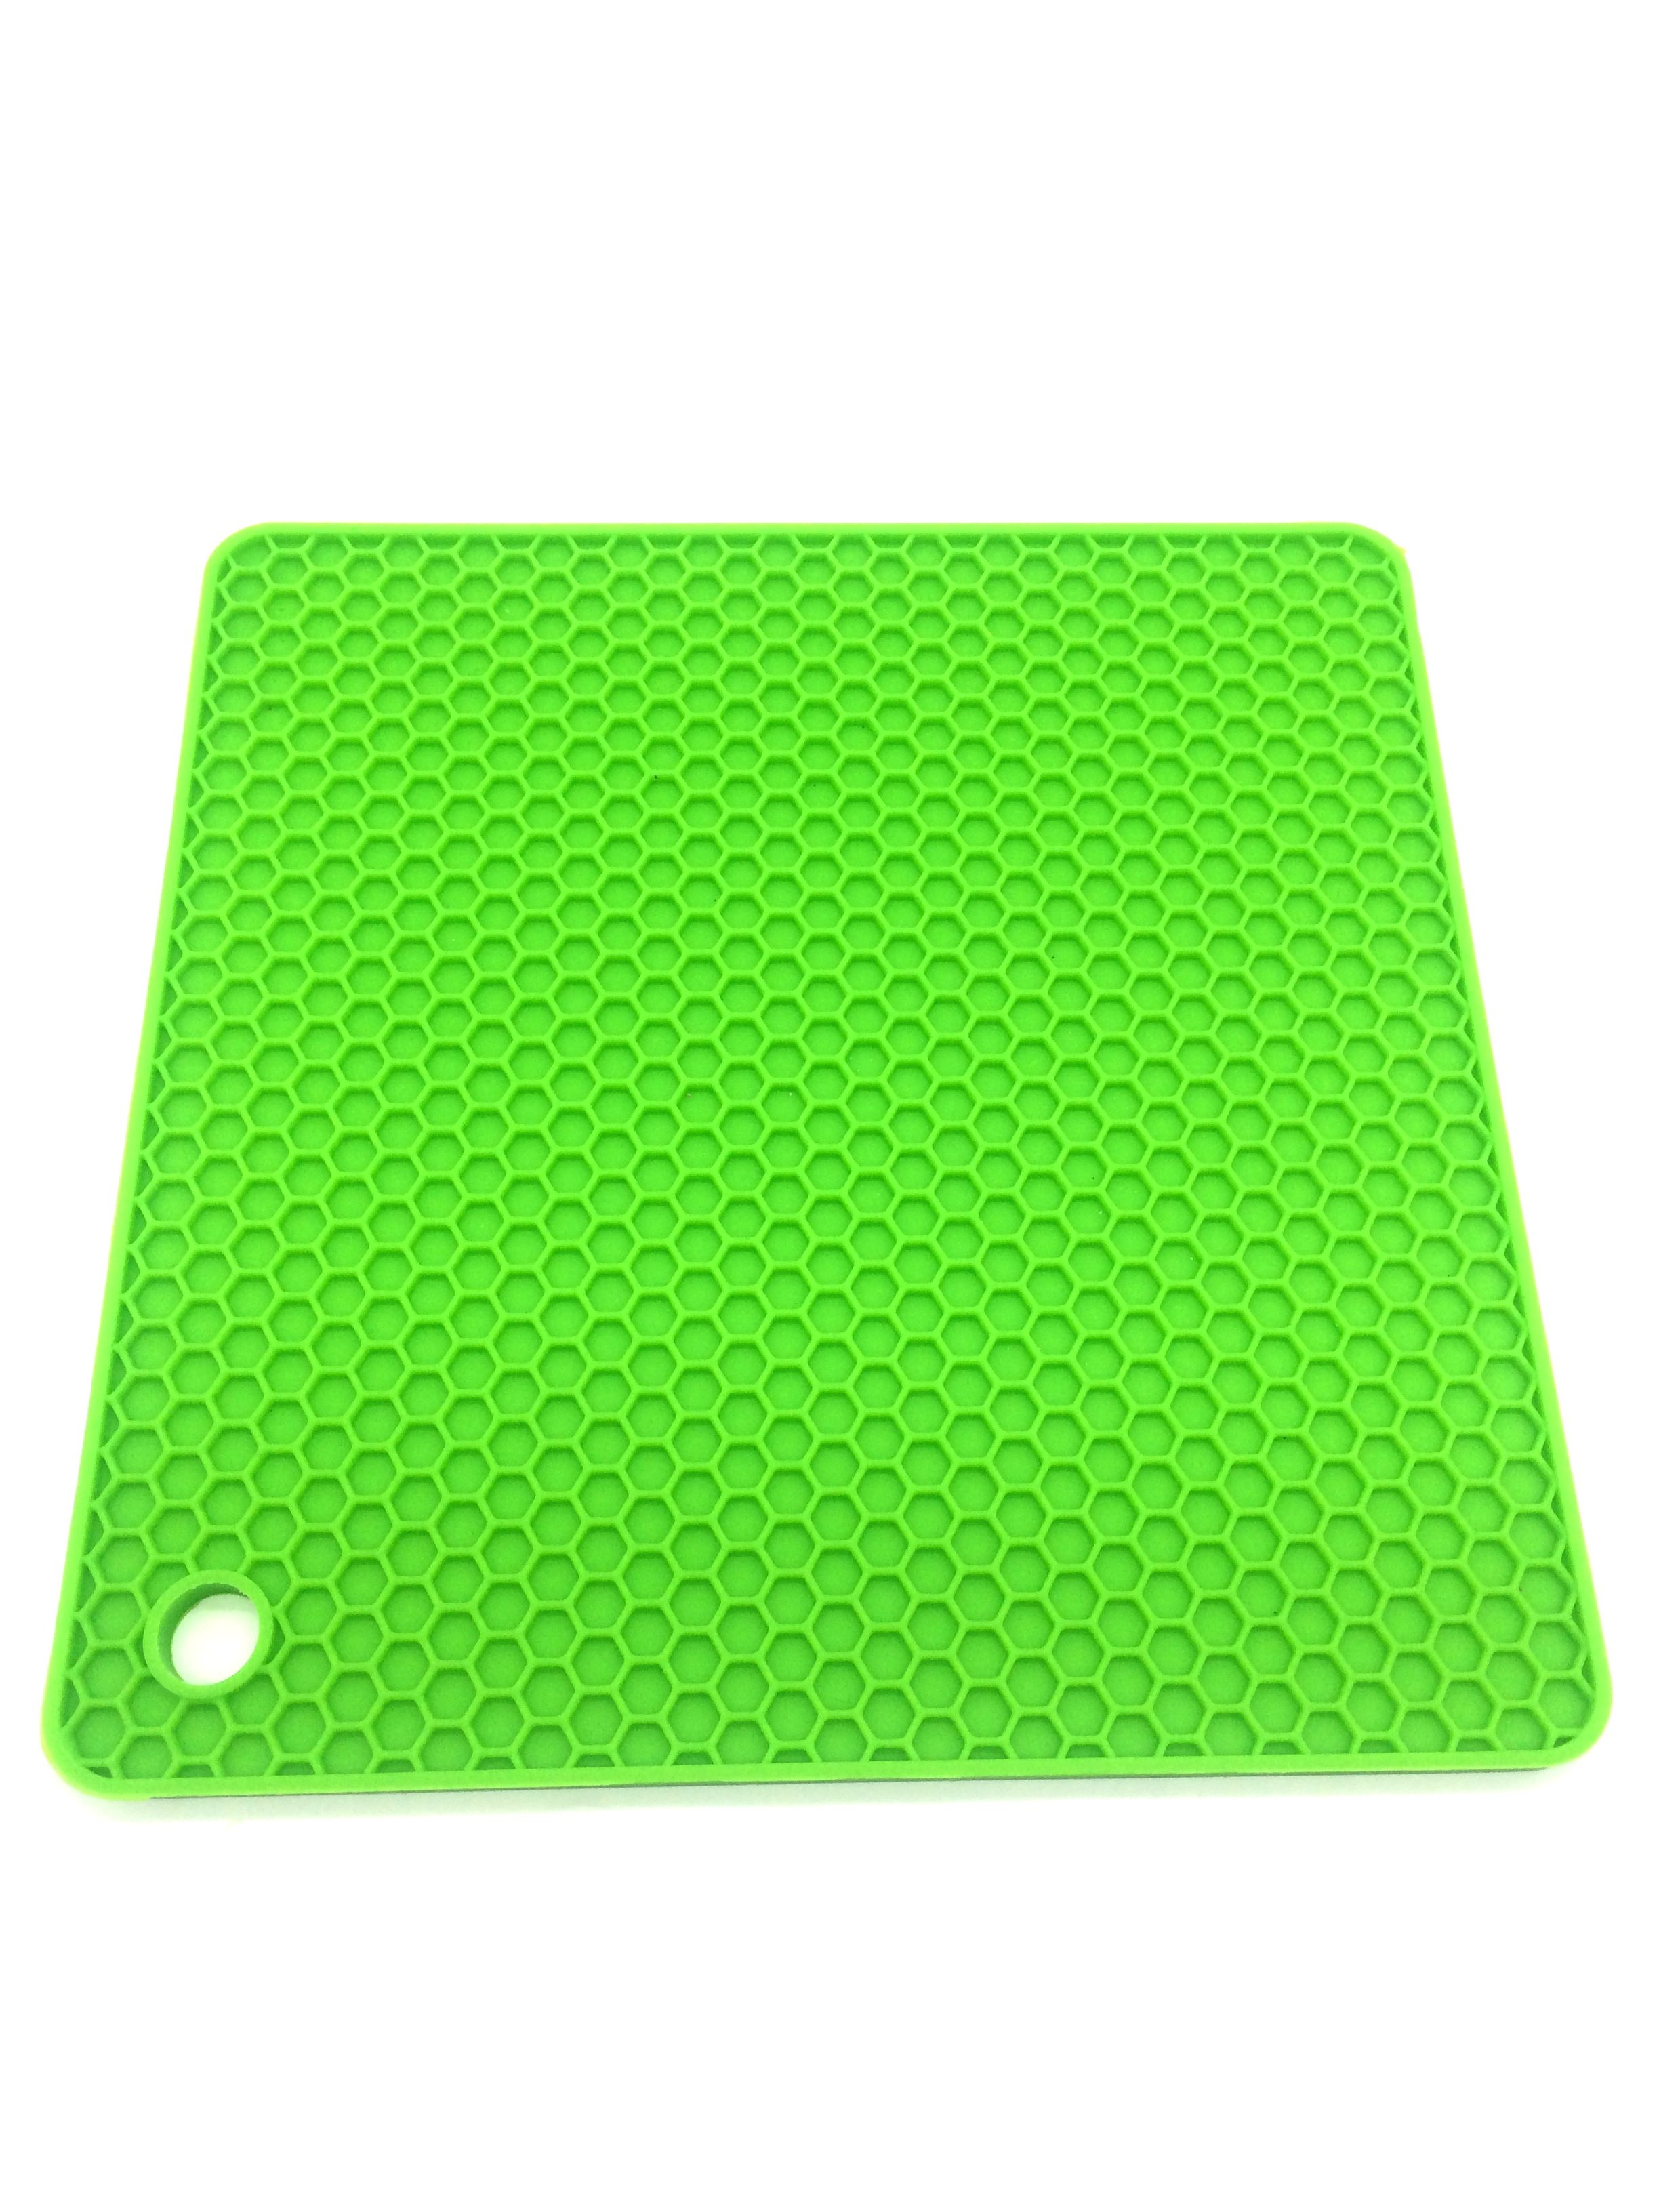 mat table mats for resistant tableheat cbde room hd concept dining photos heat with